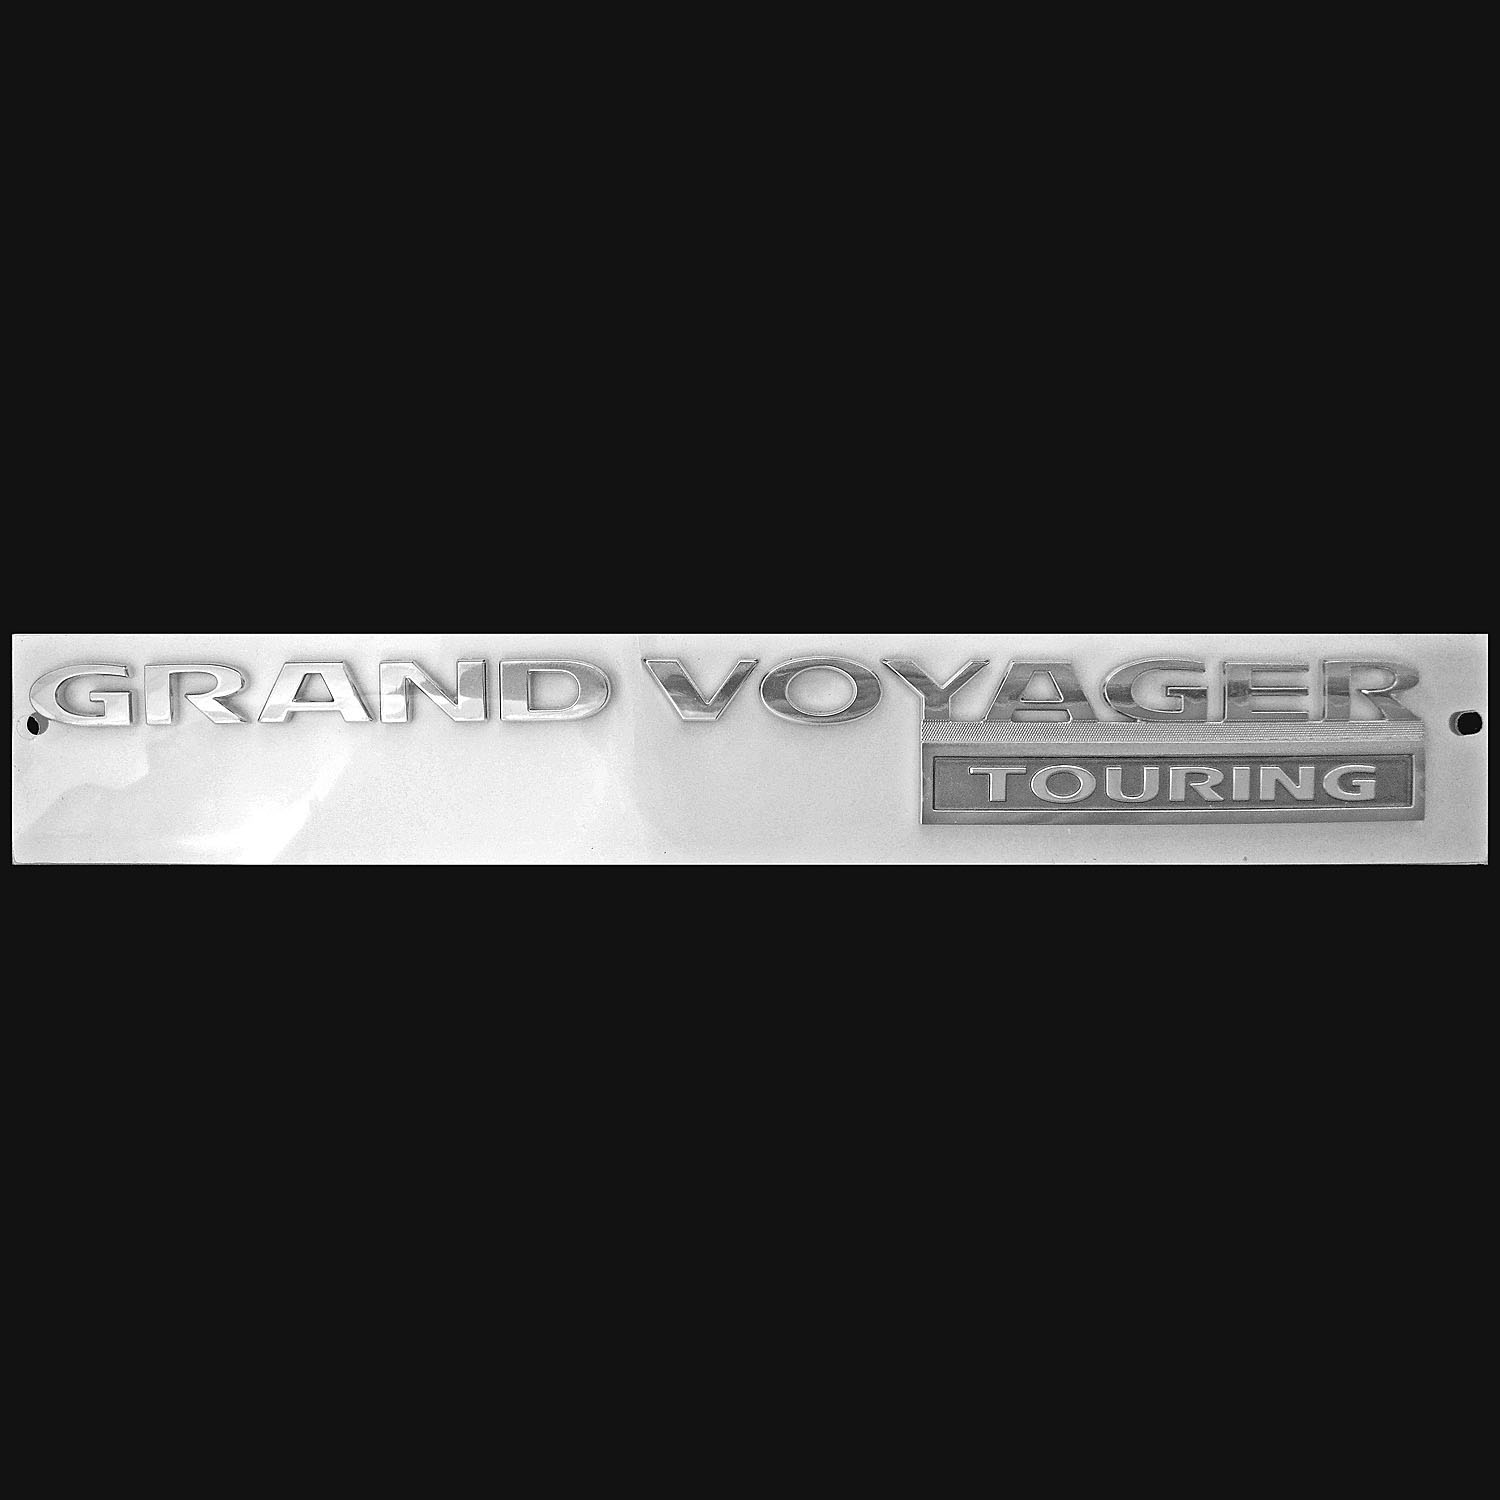 New Grand Voyager LX Trim Mini Van Door Rear Liftgate Logo Emblem Badge Decal